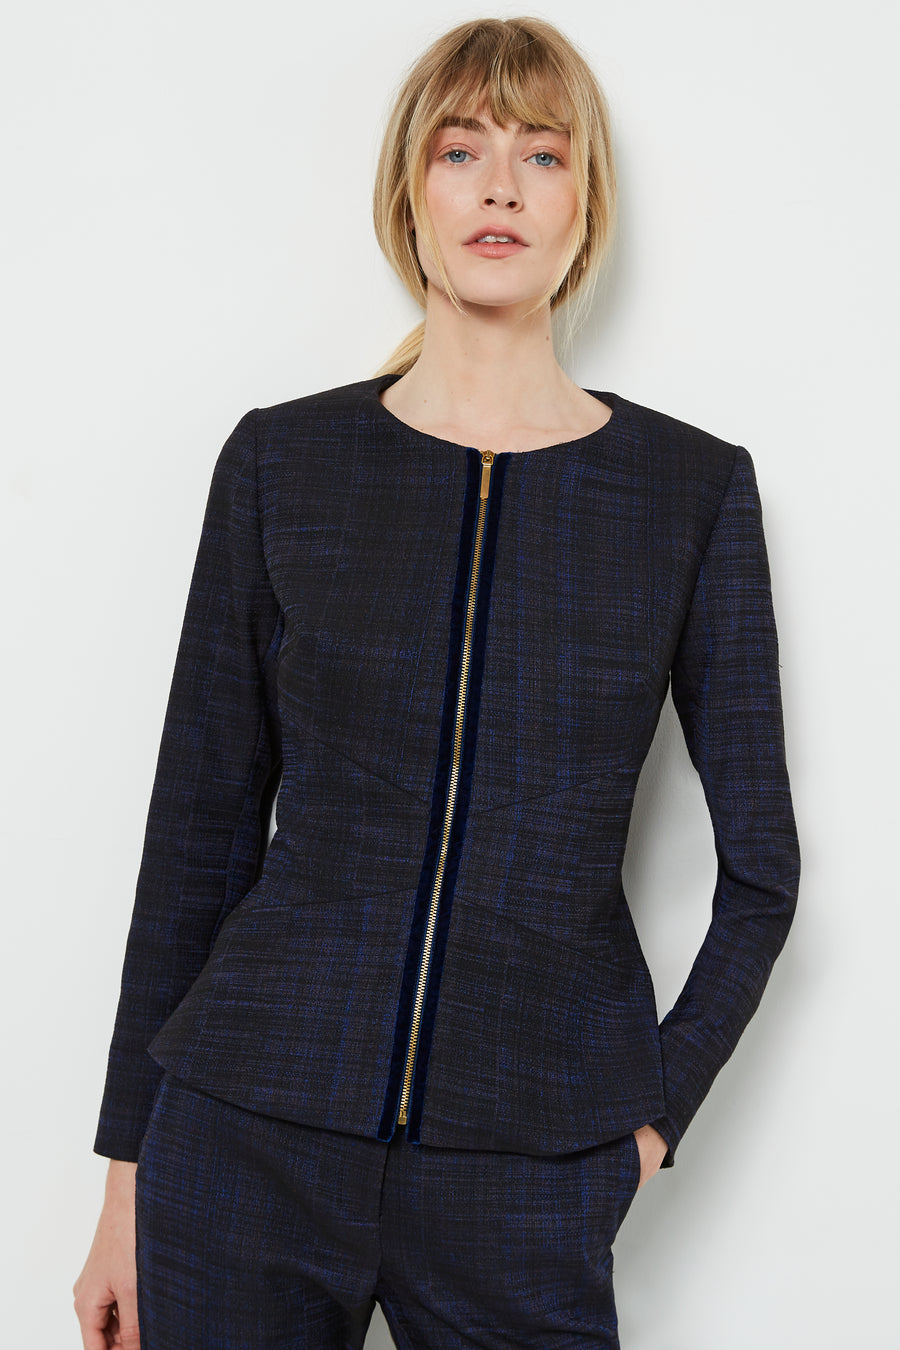 Finsbury Blue Crosshatch Jacquard Jacket